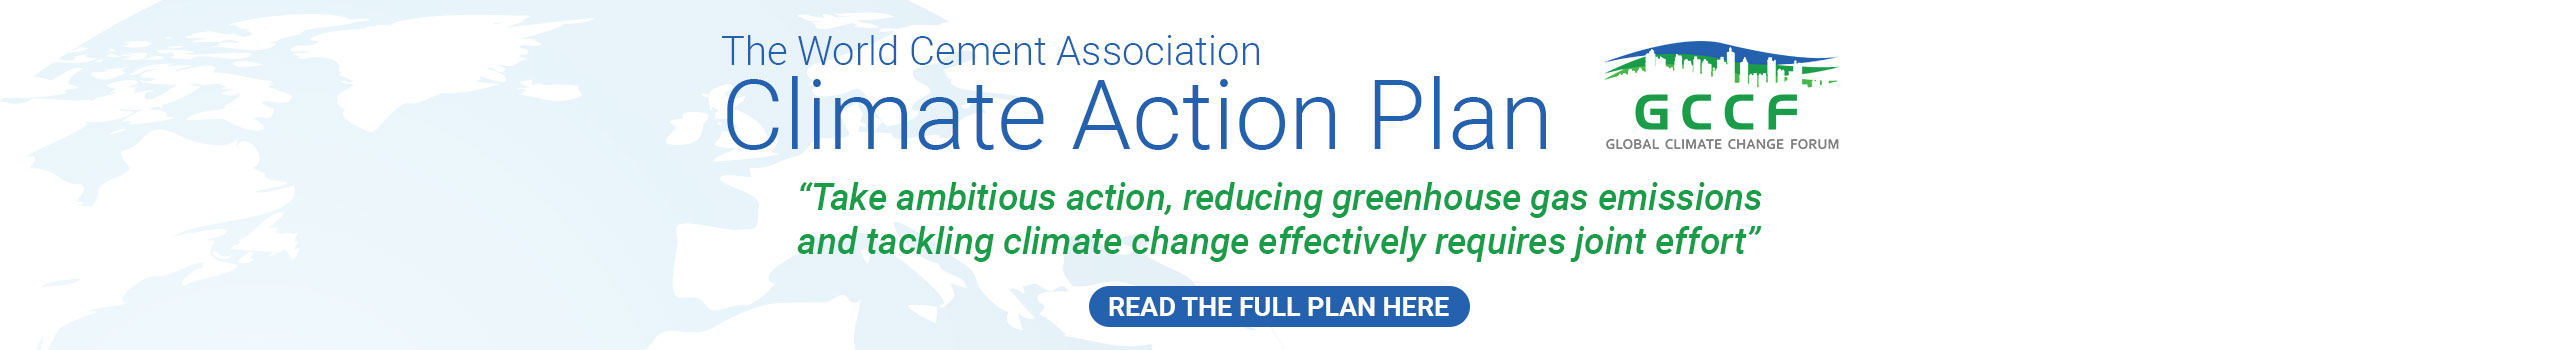 climate-action-plan-2018